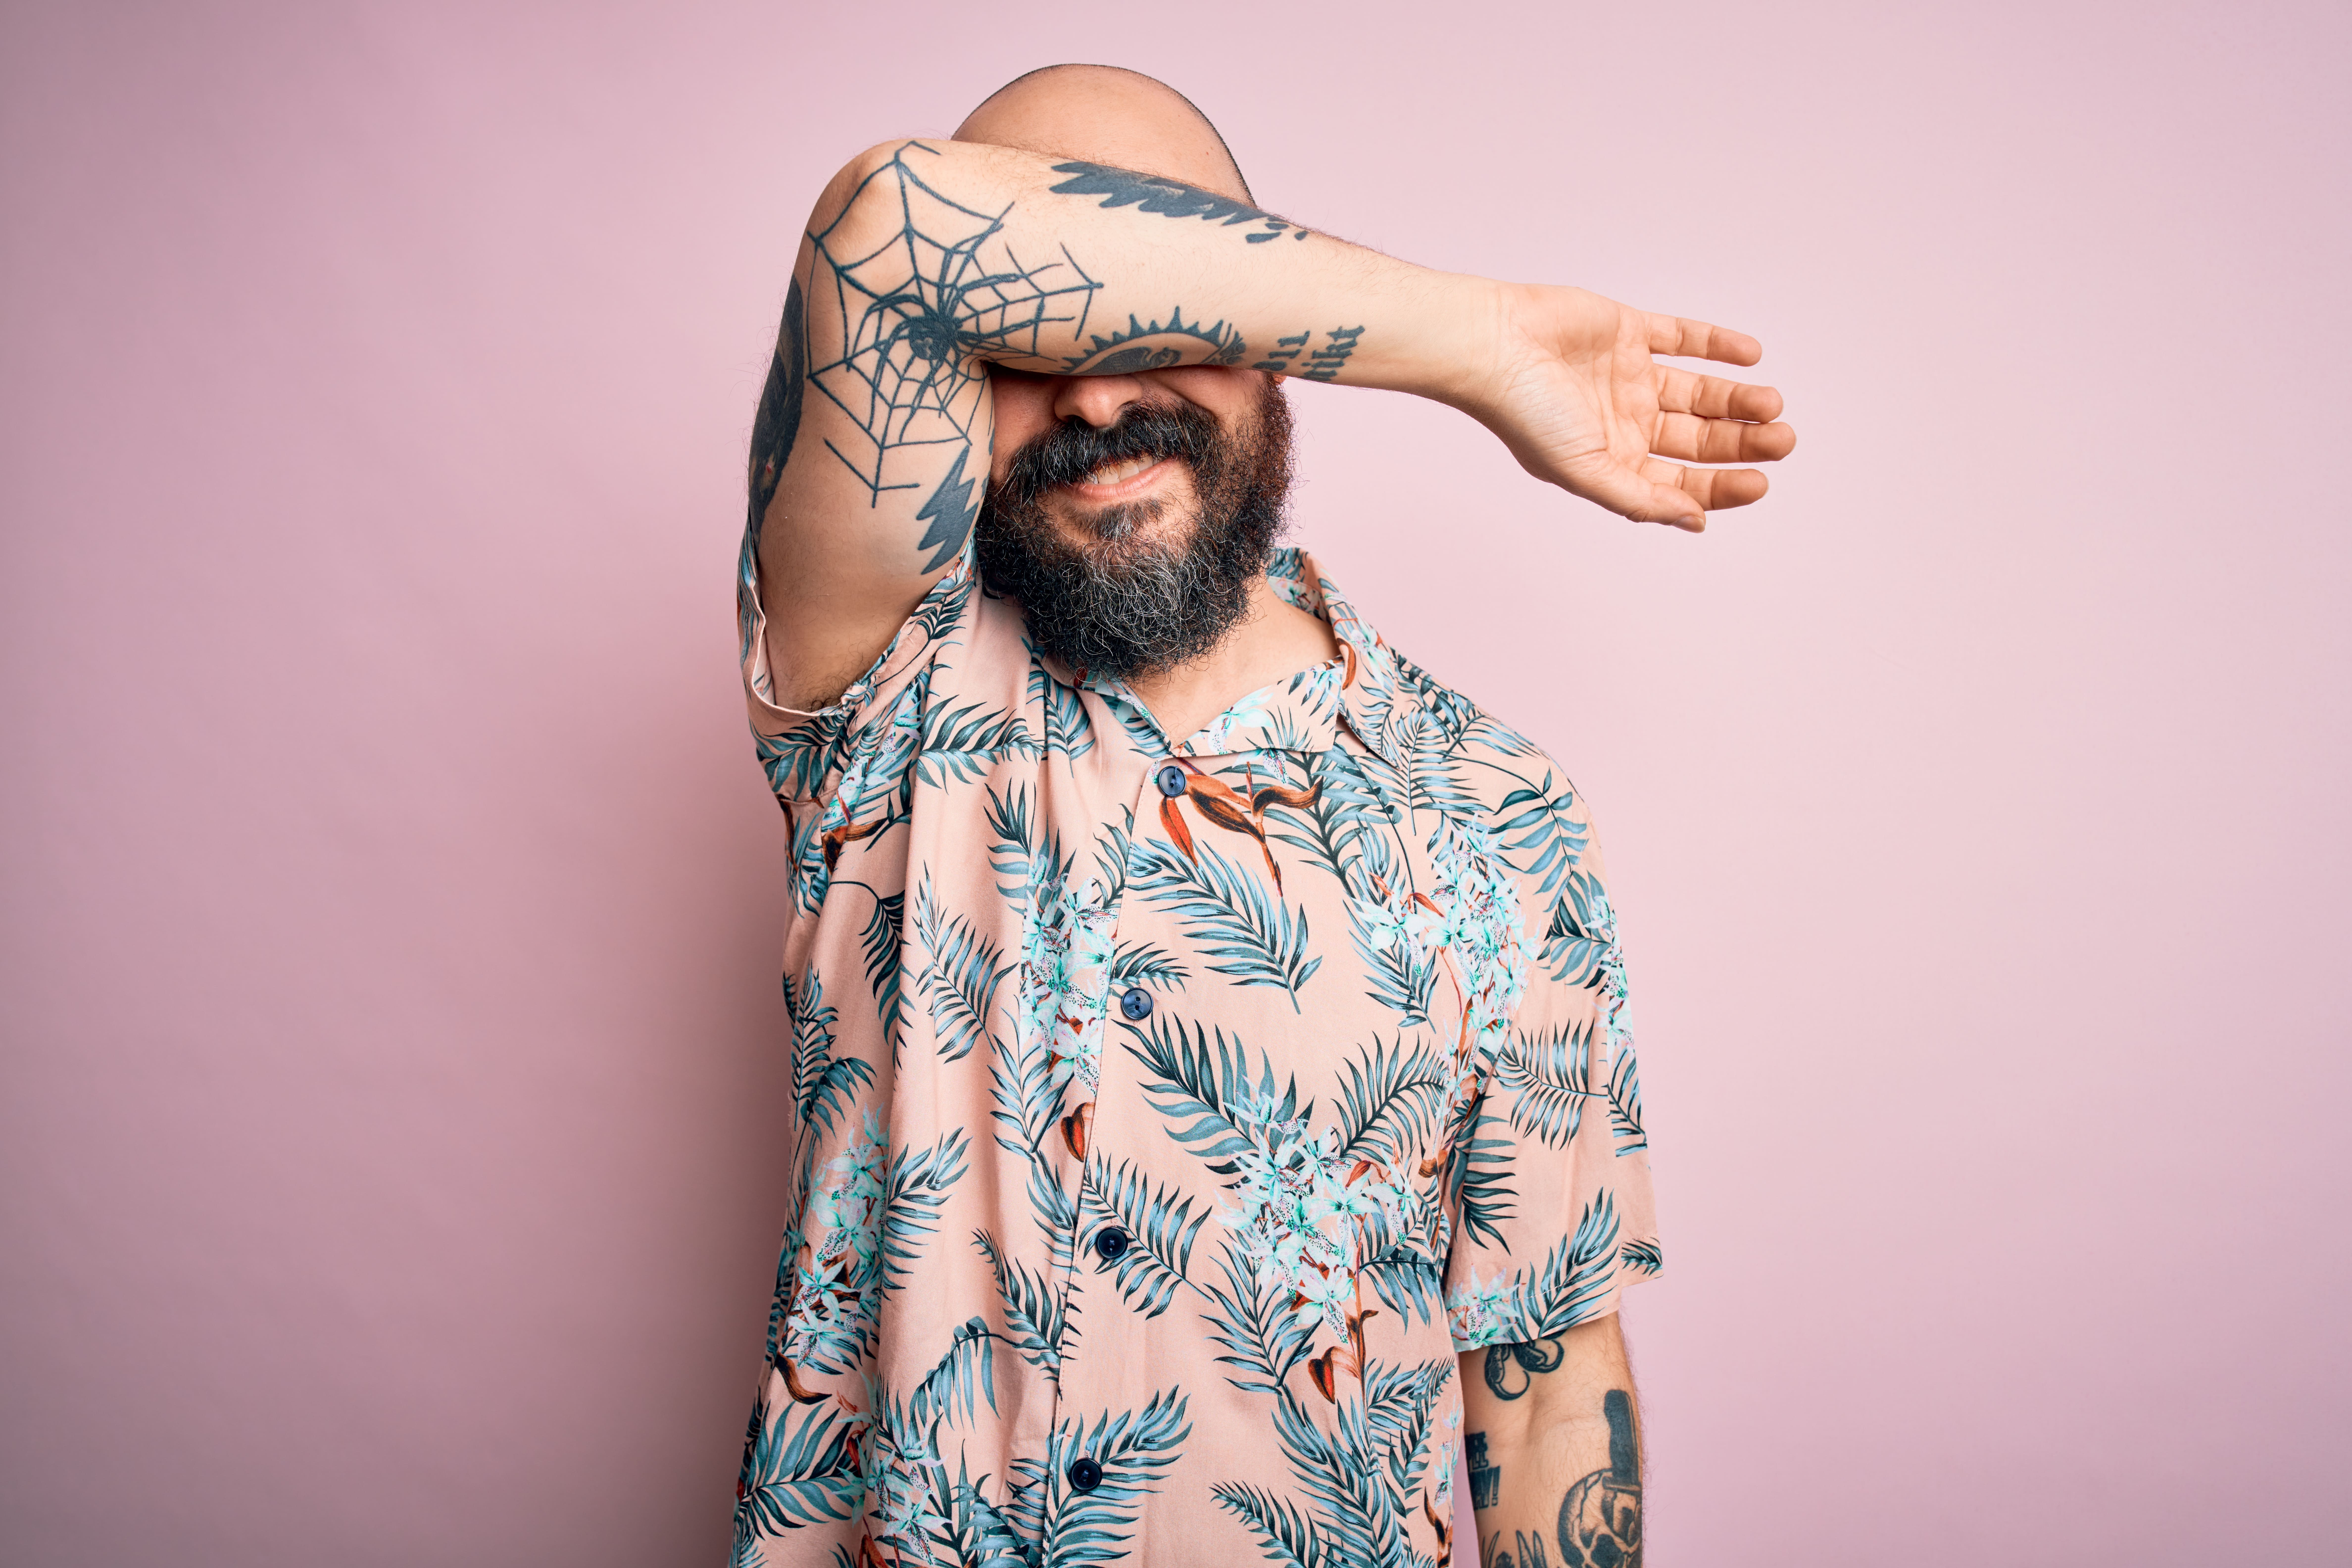 Man with tattooed arm | Shutterstock